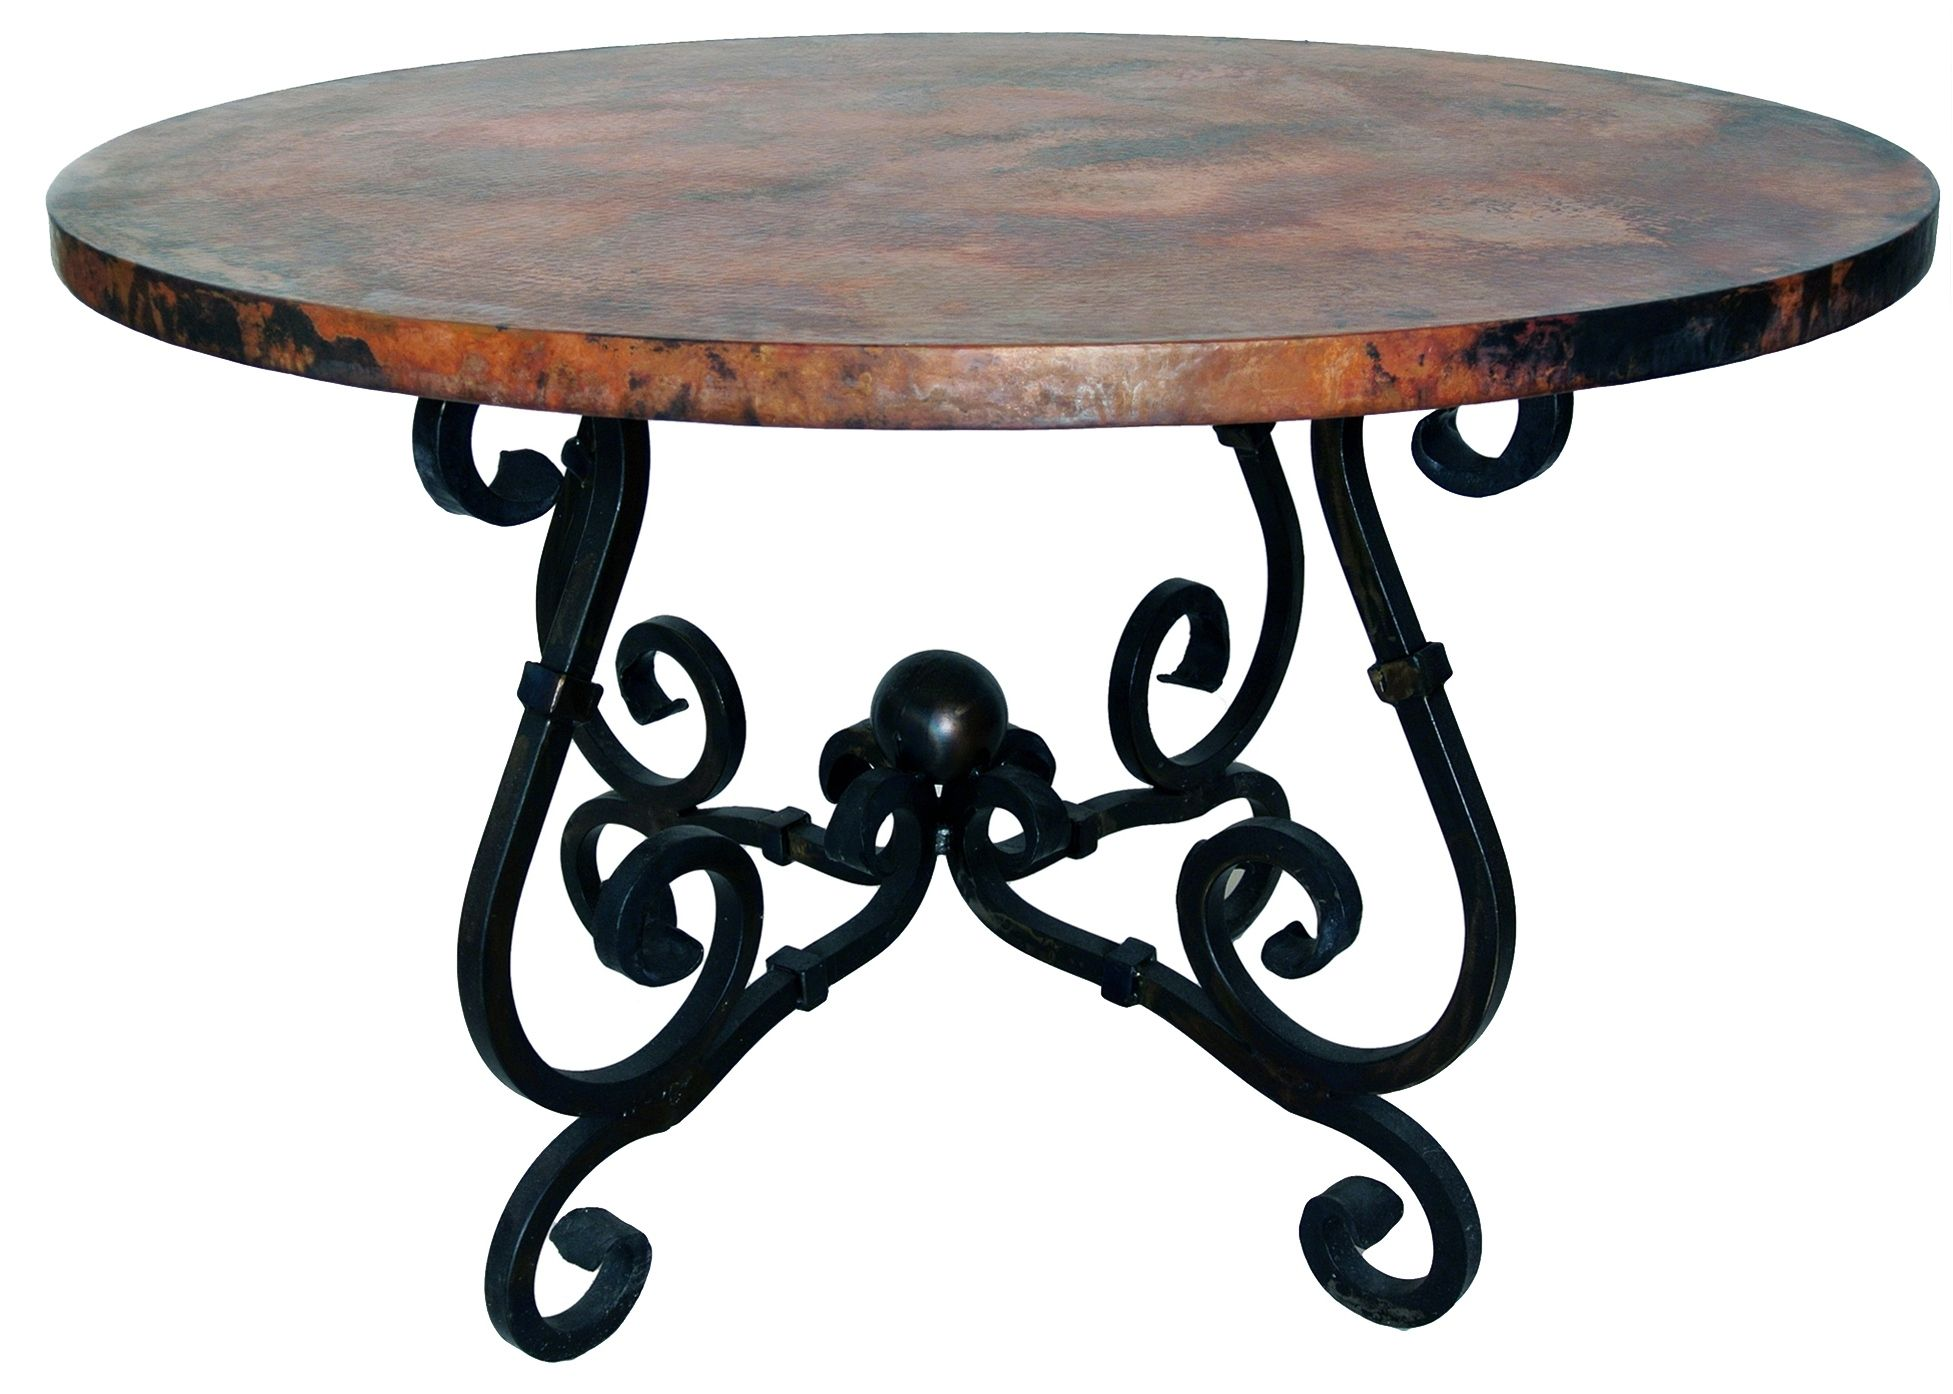 Wrought Iron Table Bases For Glass Tops Wrought Iron Dining Table Dining Table Copper Iron Table